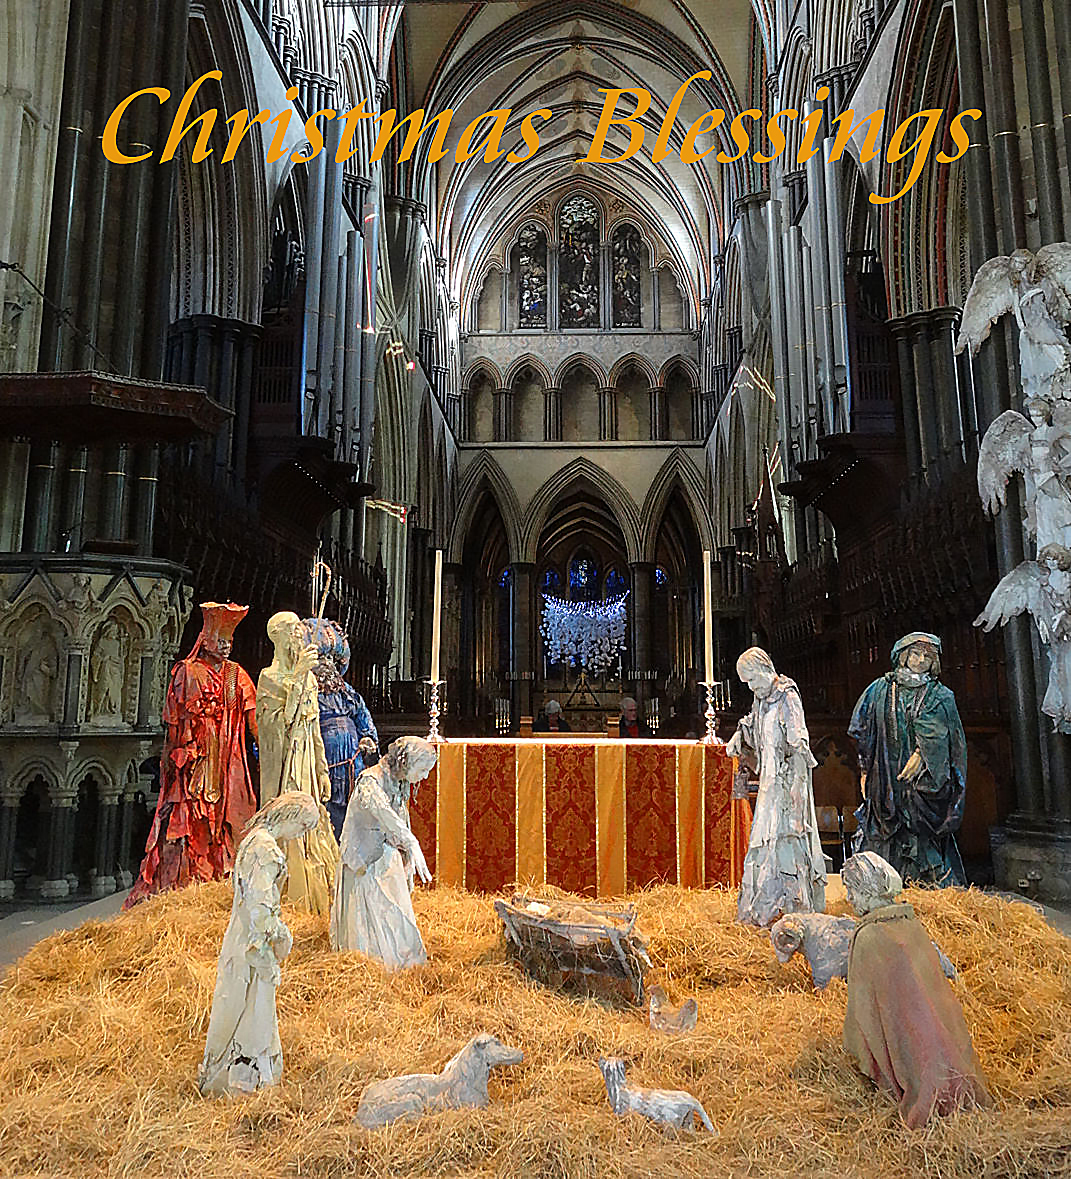 'Christmas Blessings' by John Hart